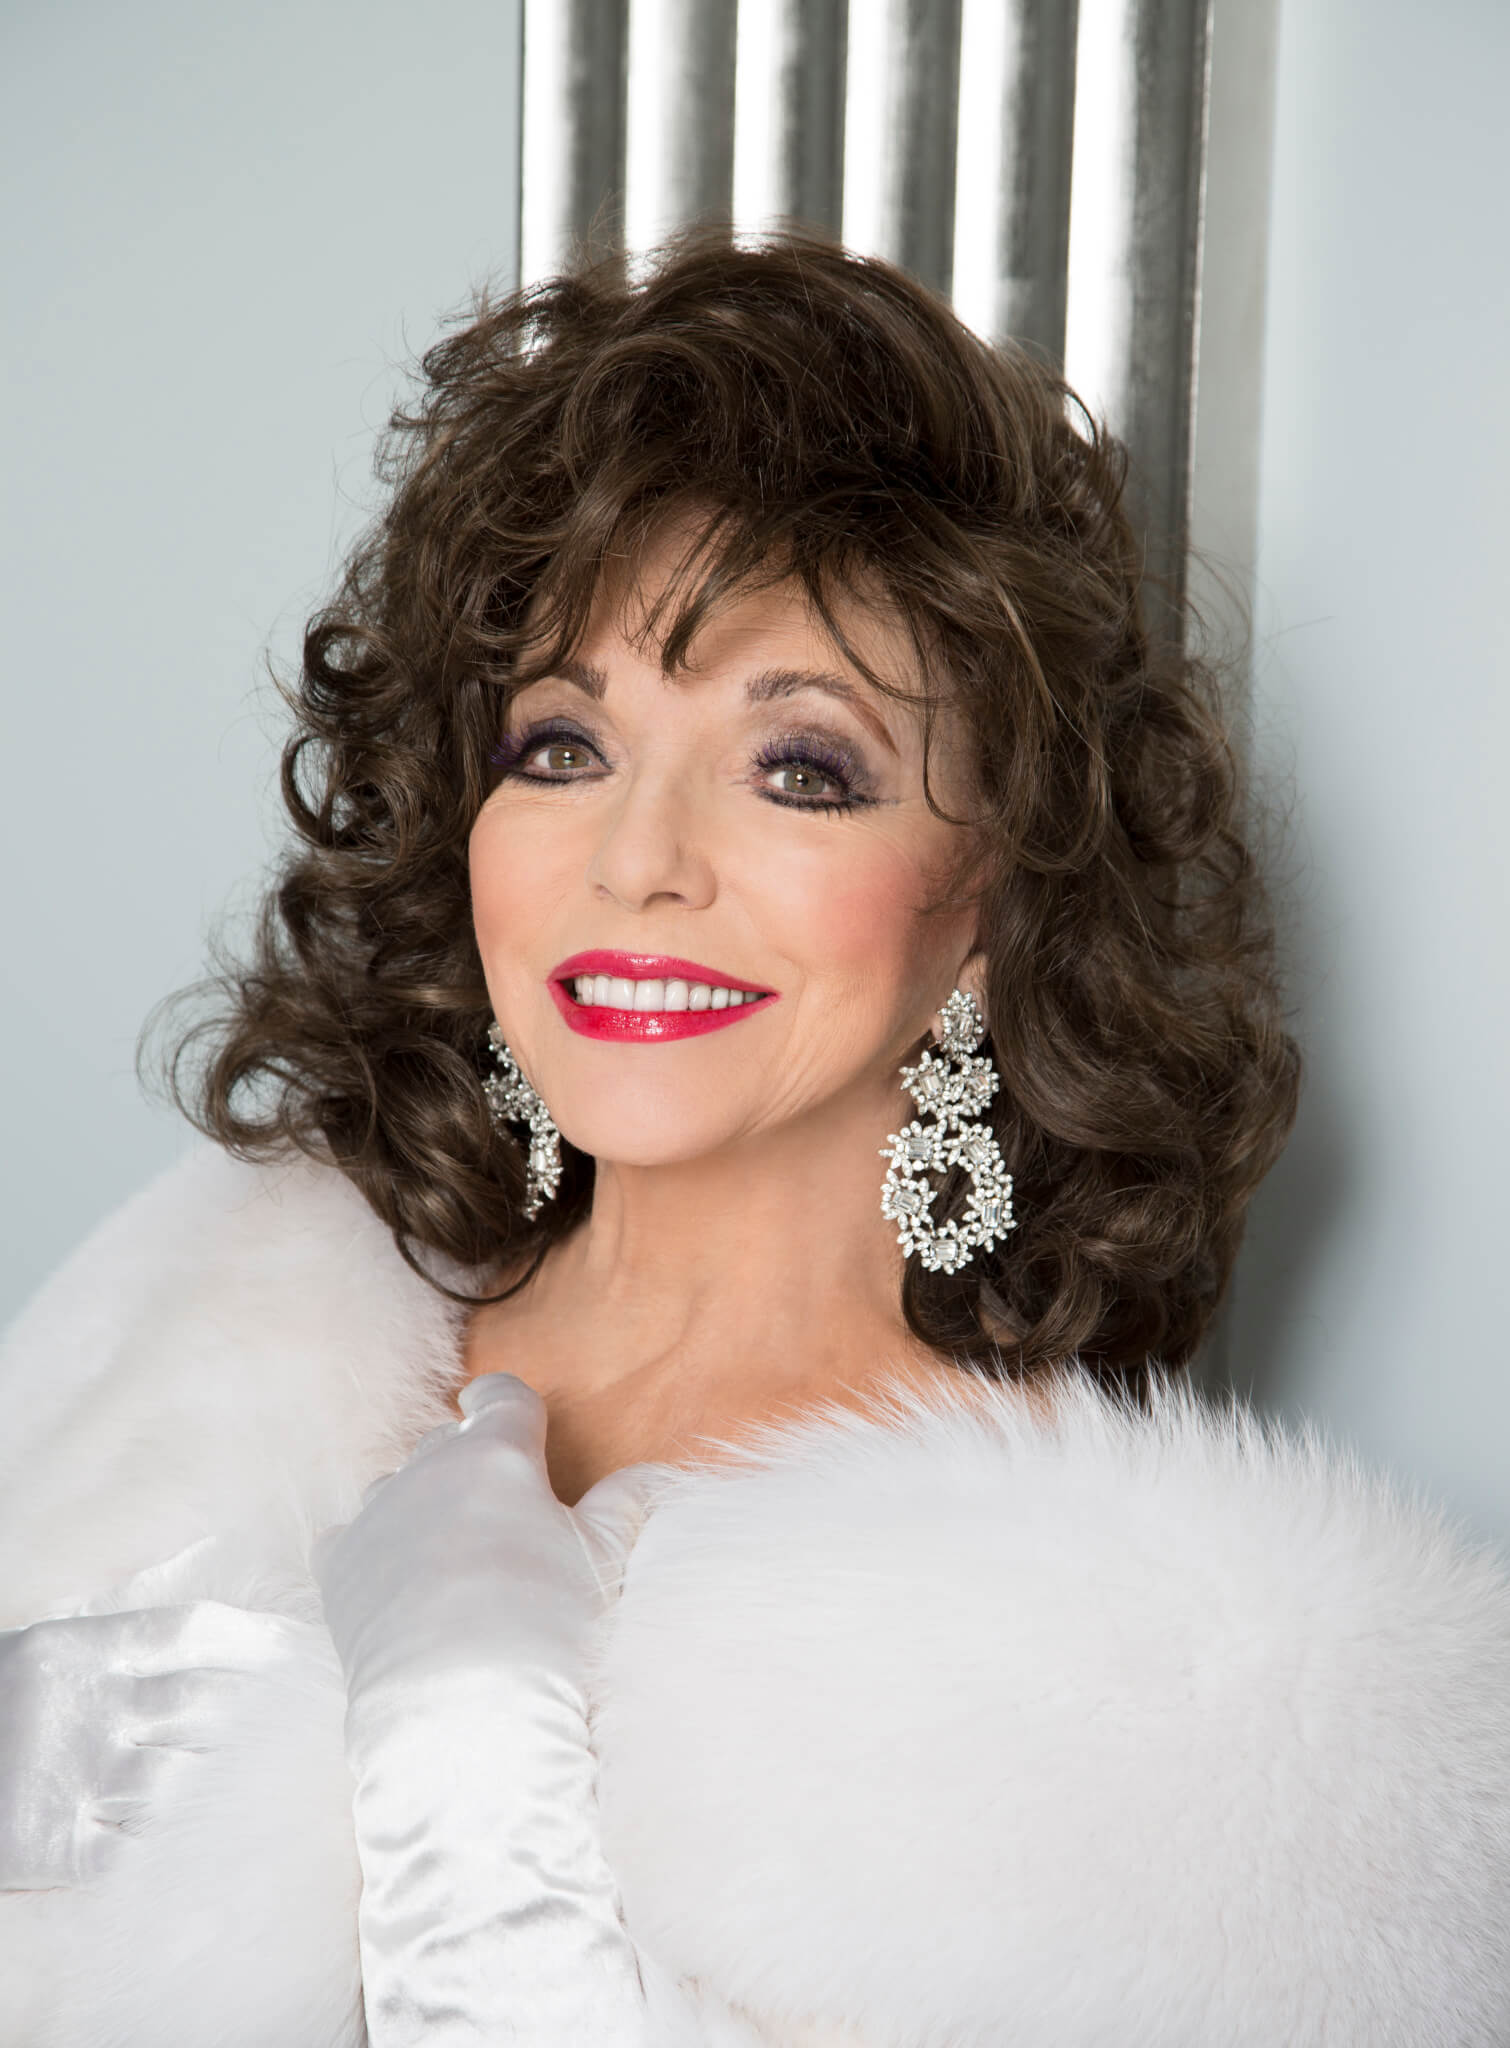 Dame Joan Collins UnscriptedTour